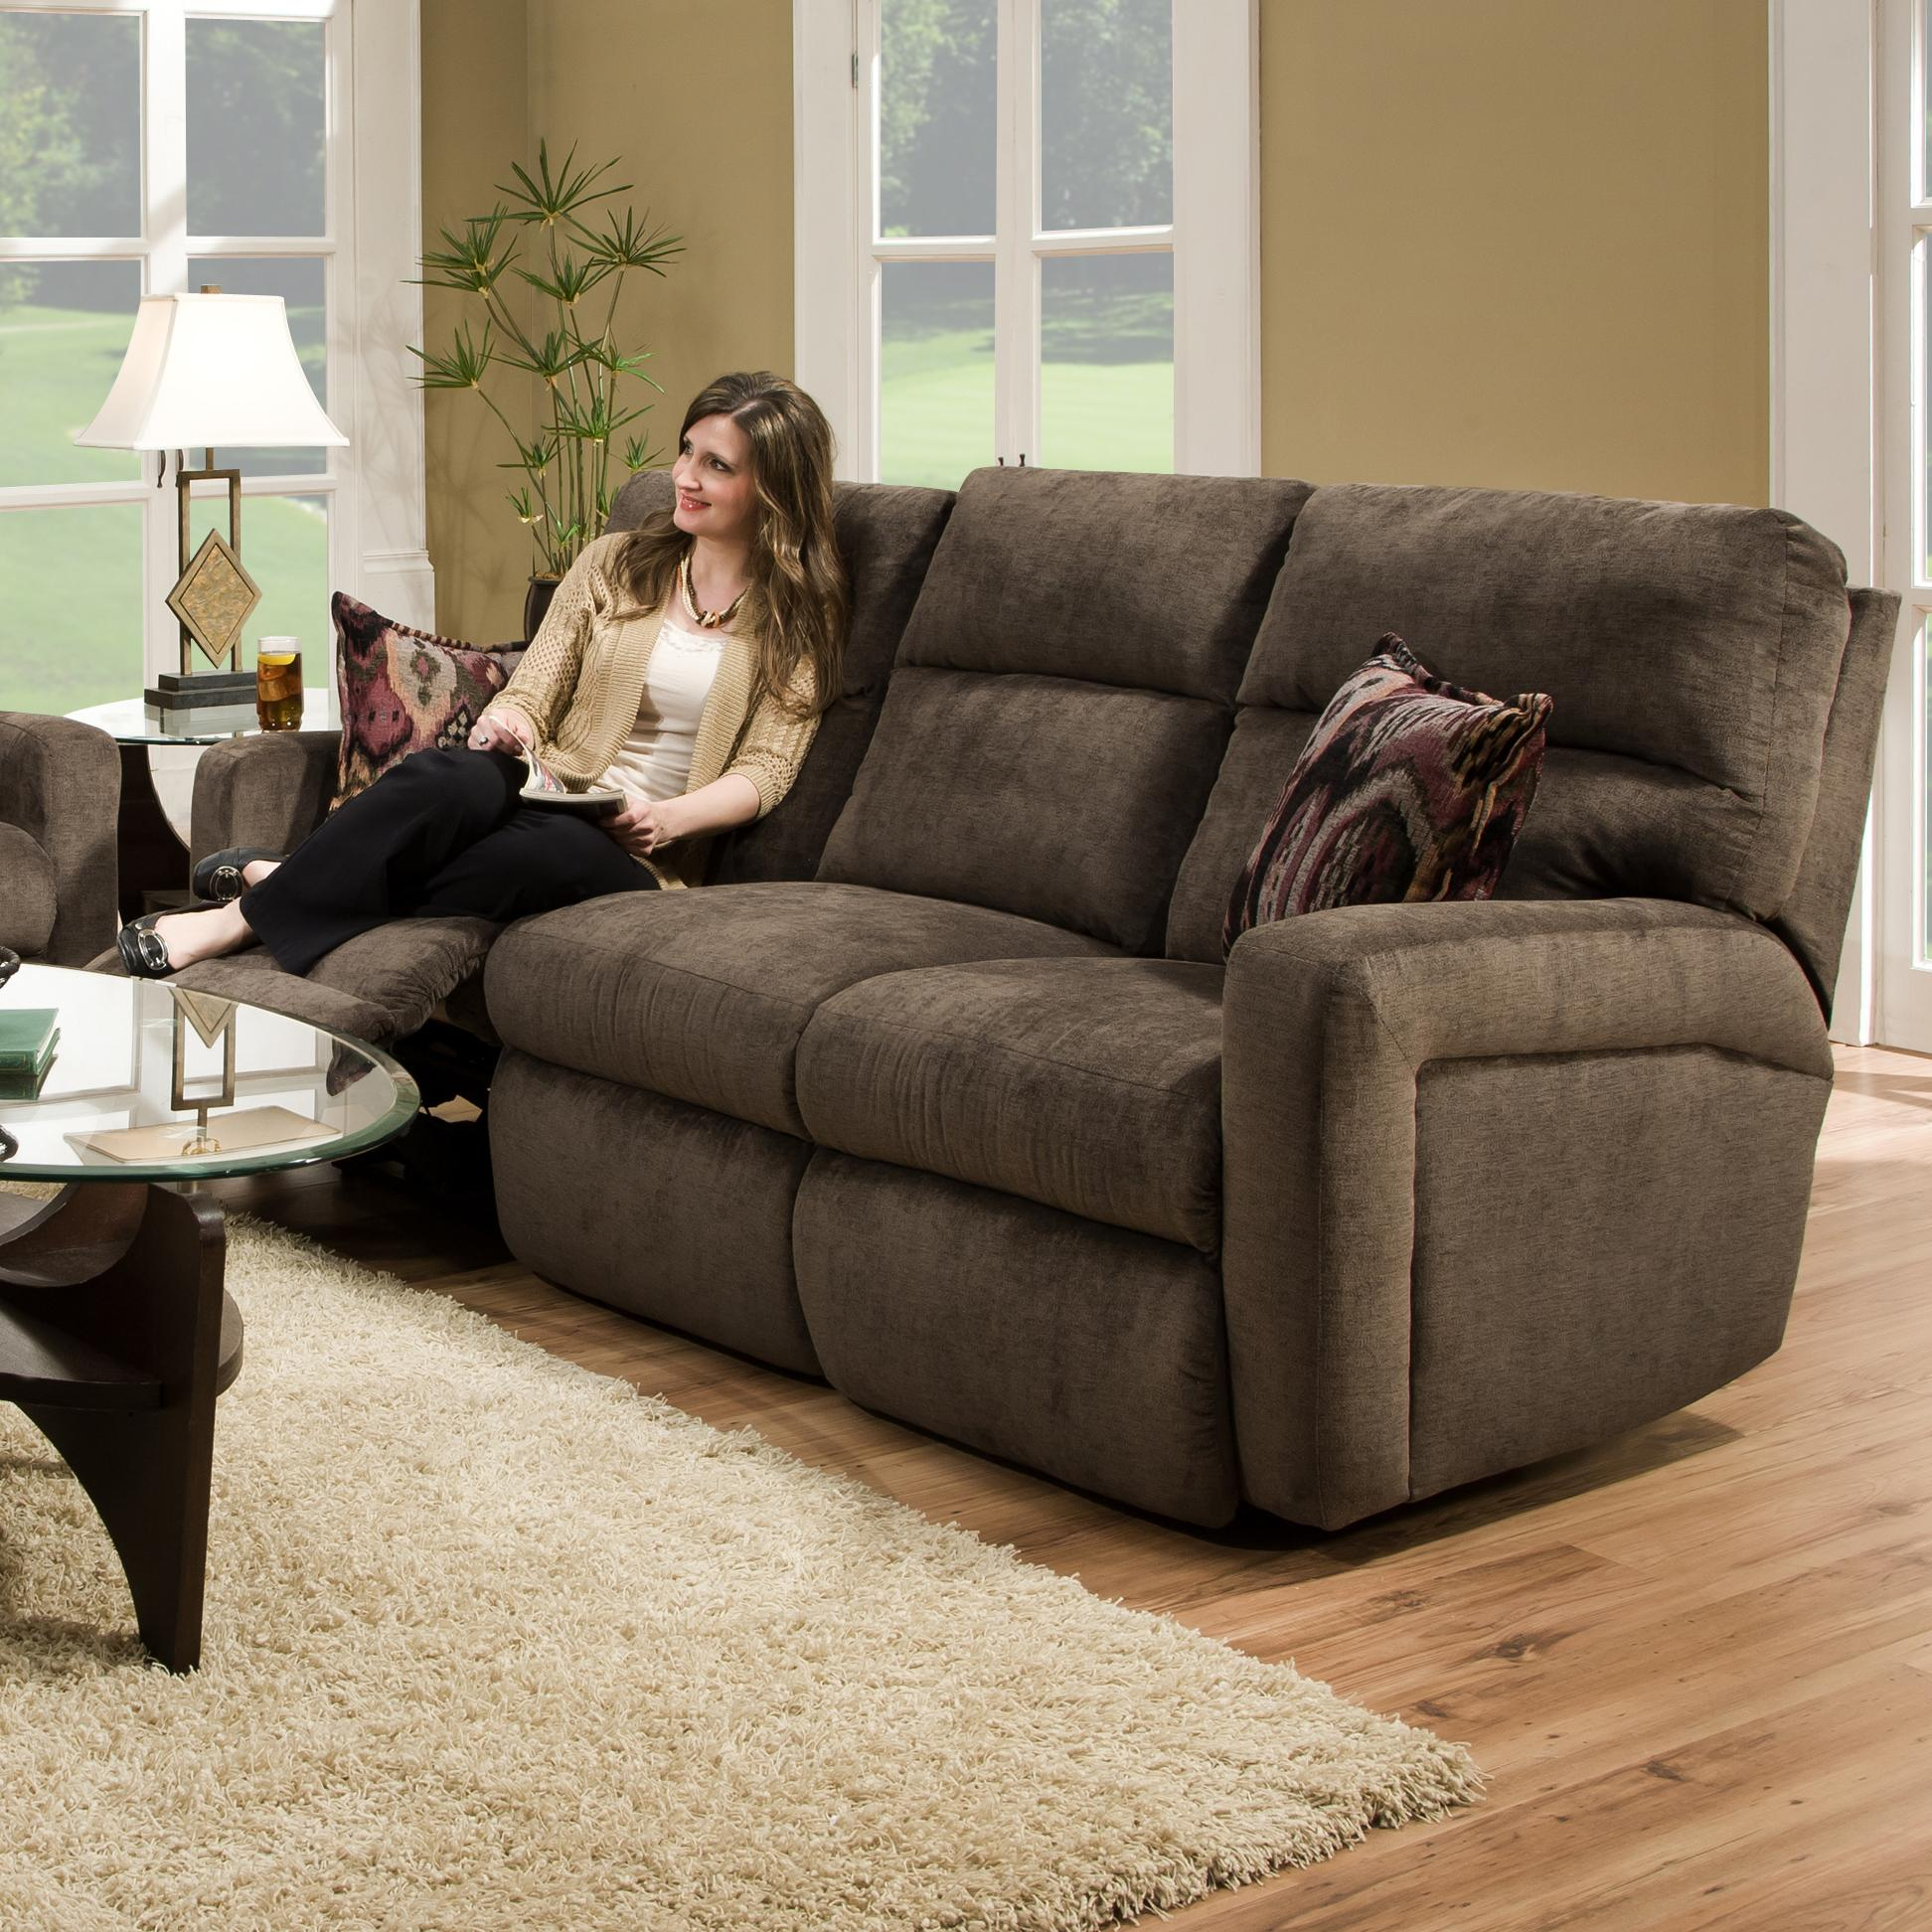 Contemporary Styled Double Reclining Sofa for Family Rooms. by Southern Motion : motion recliner sofa - islam-shia.org